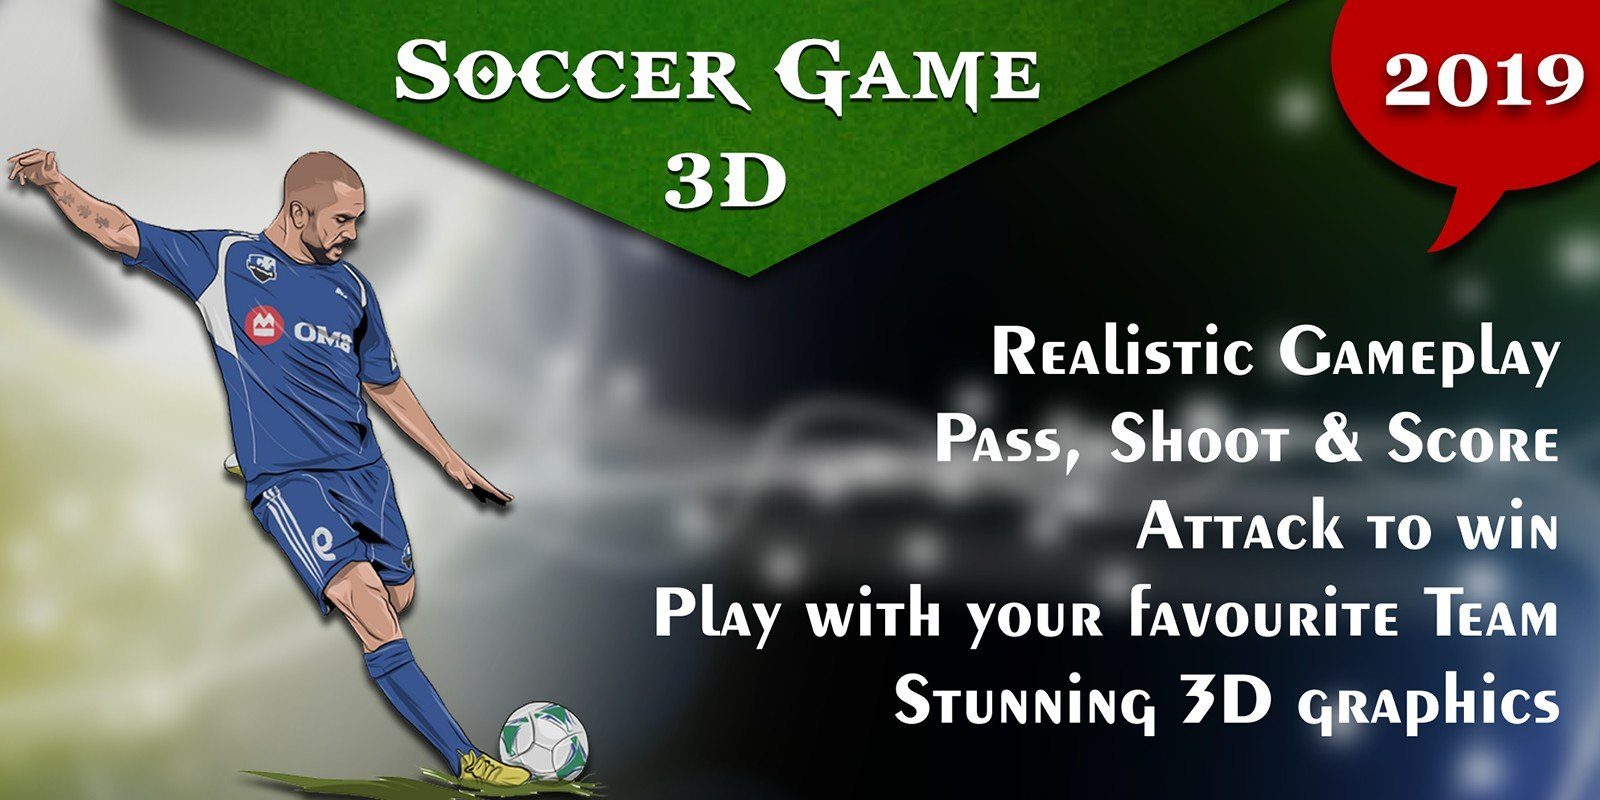 Soccer Game Unity 3D with AdMob